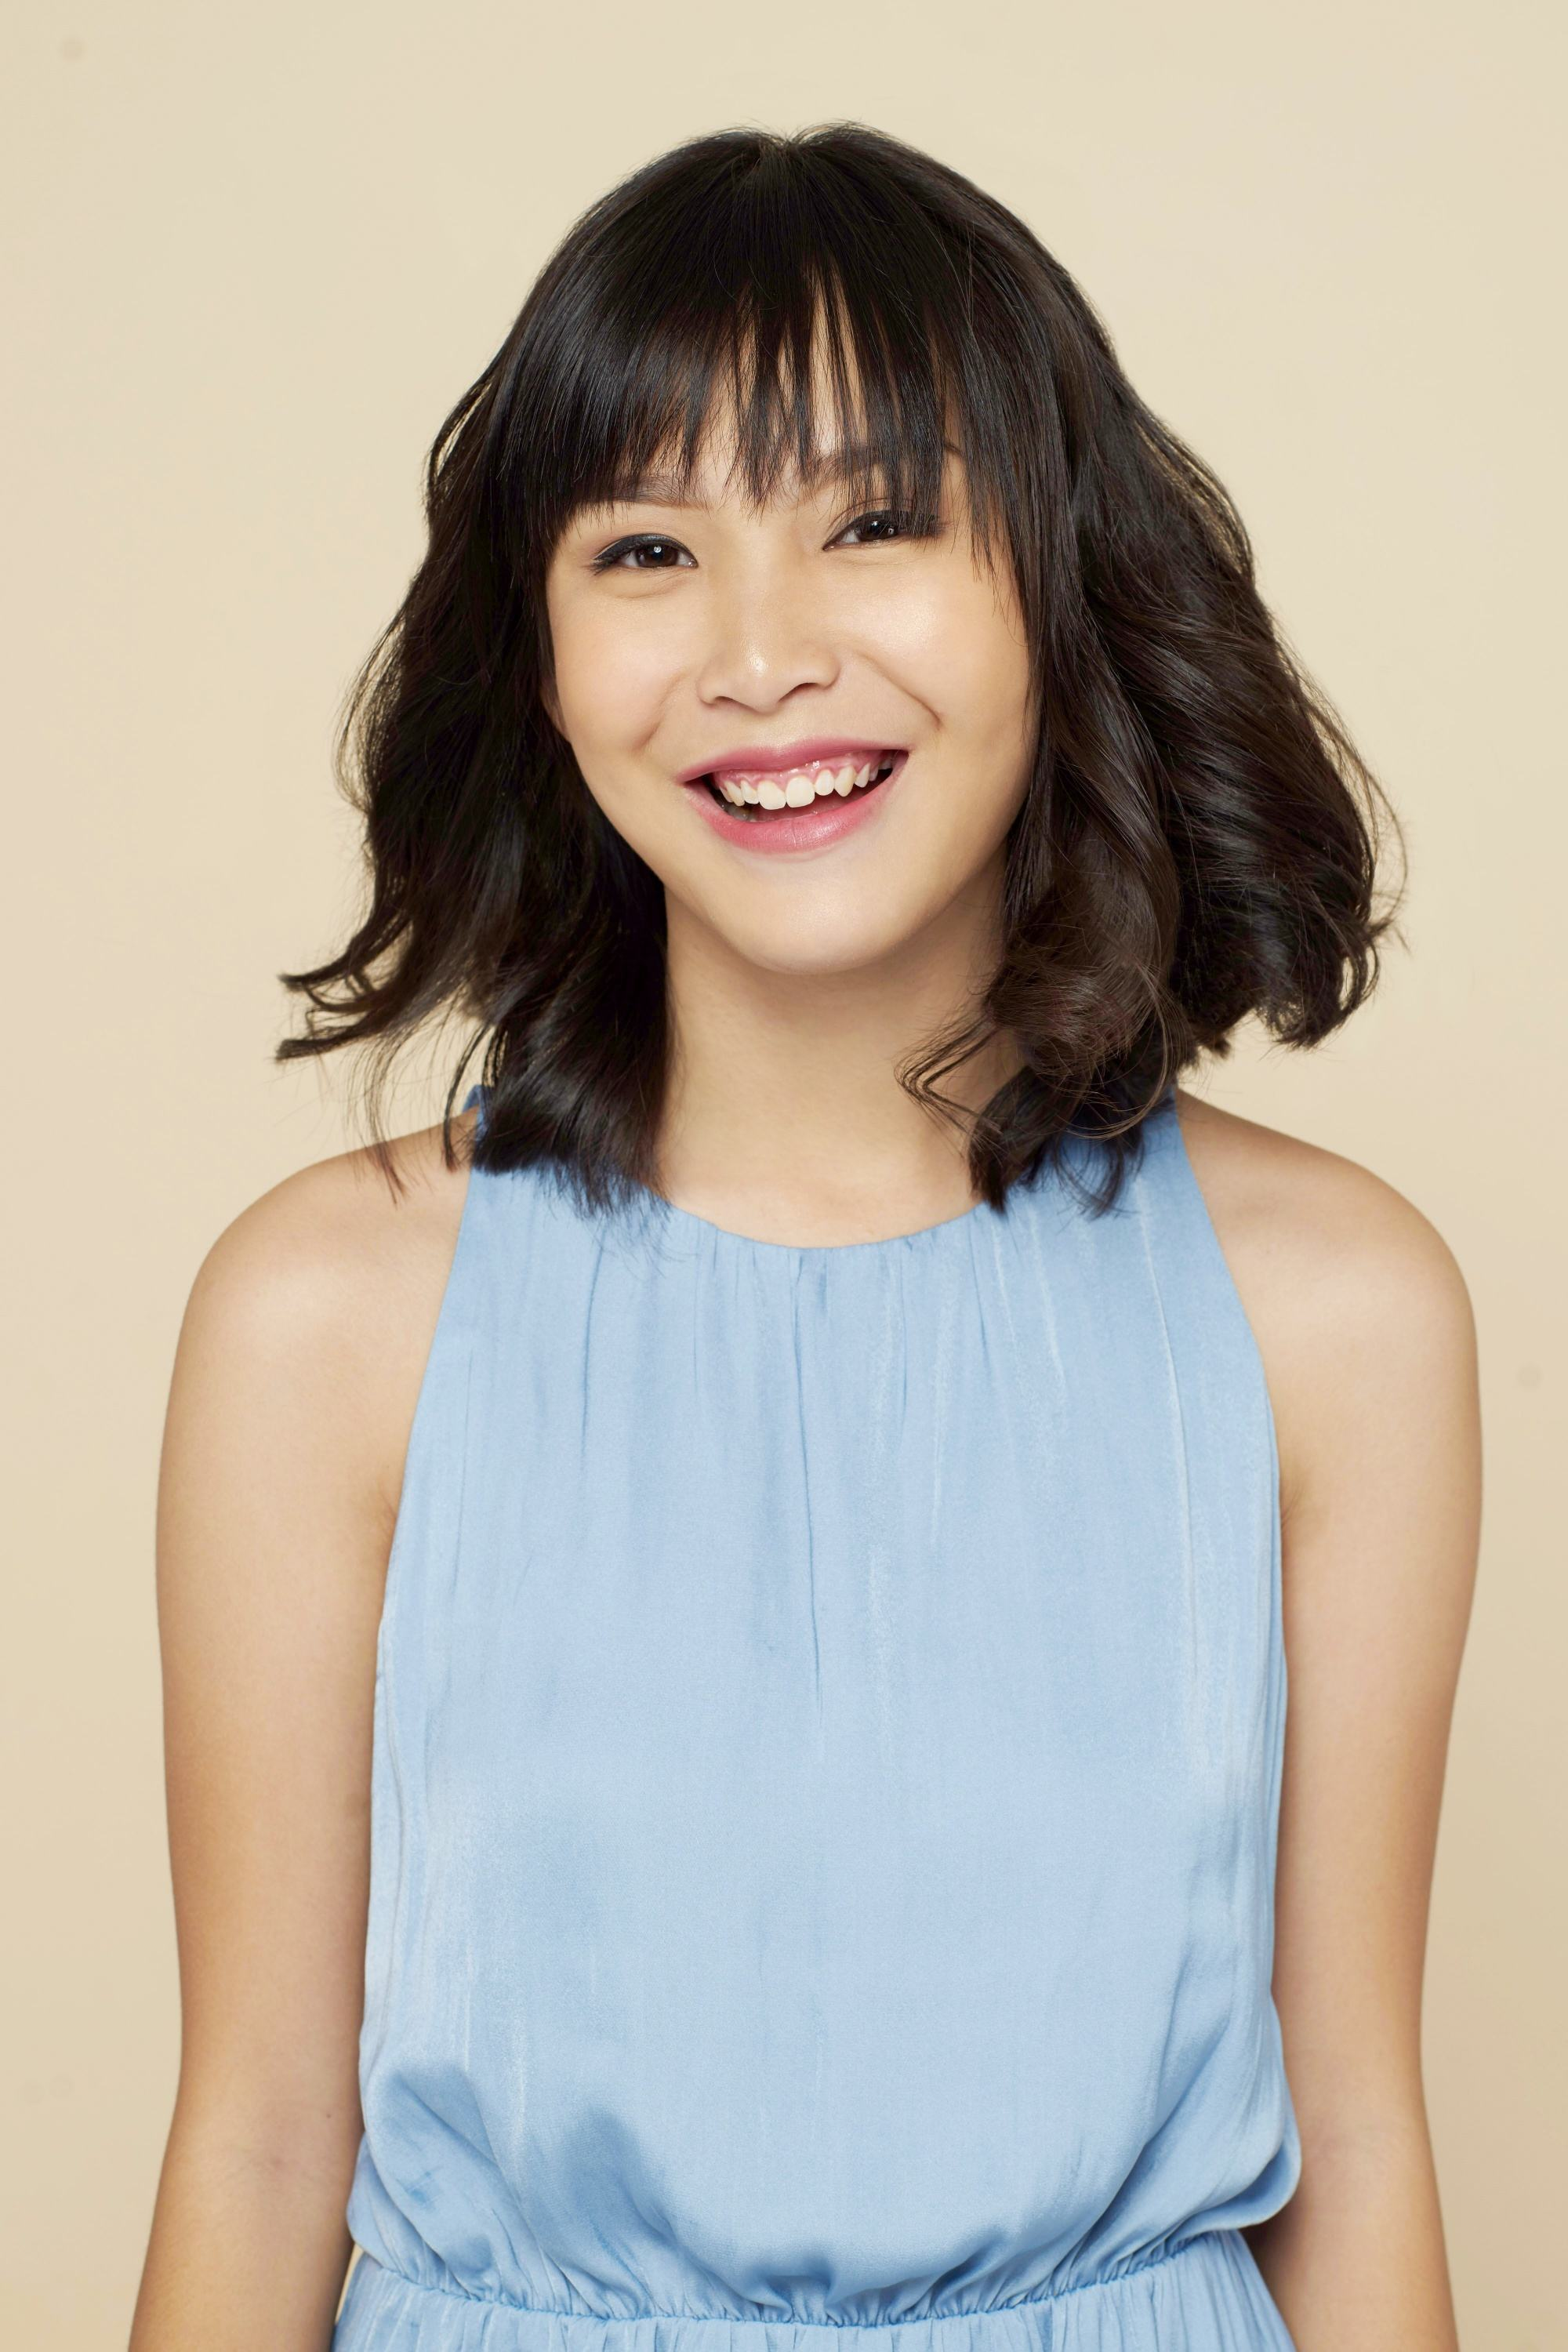 Asian woman with short black wavy hair with bangs wearing a blue sleeveless dress